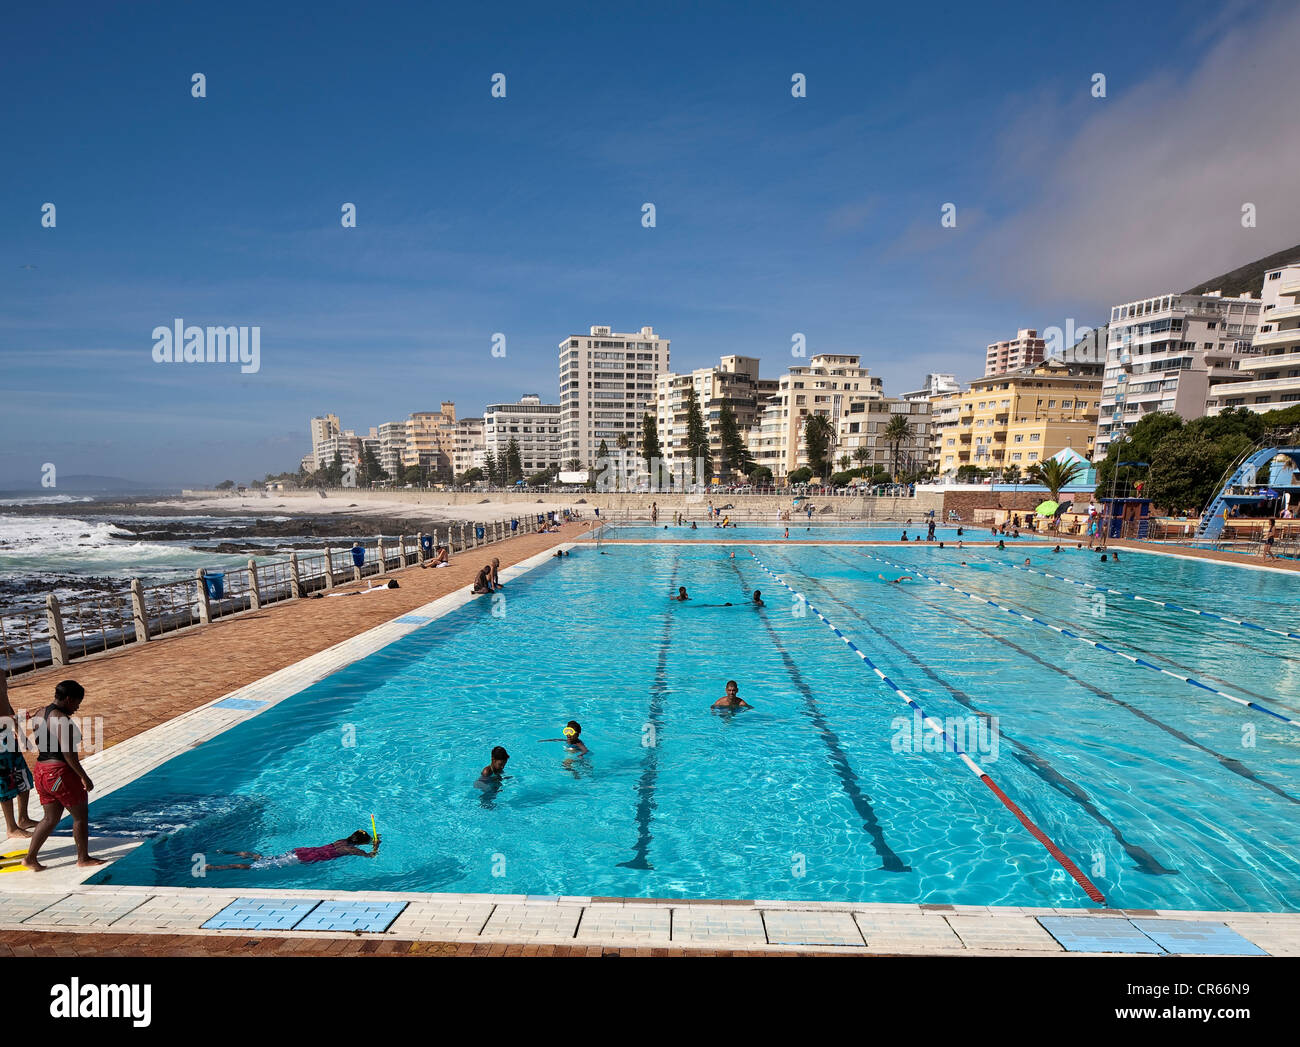 South Africa, Western Cape, Cape Town, Sea Point, outdoor swimming ...